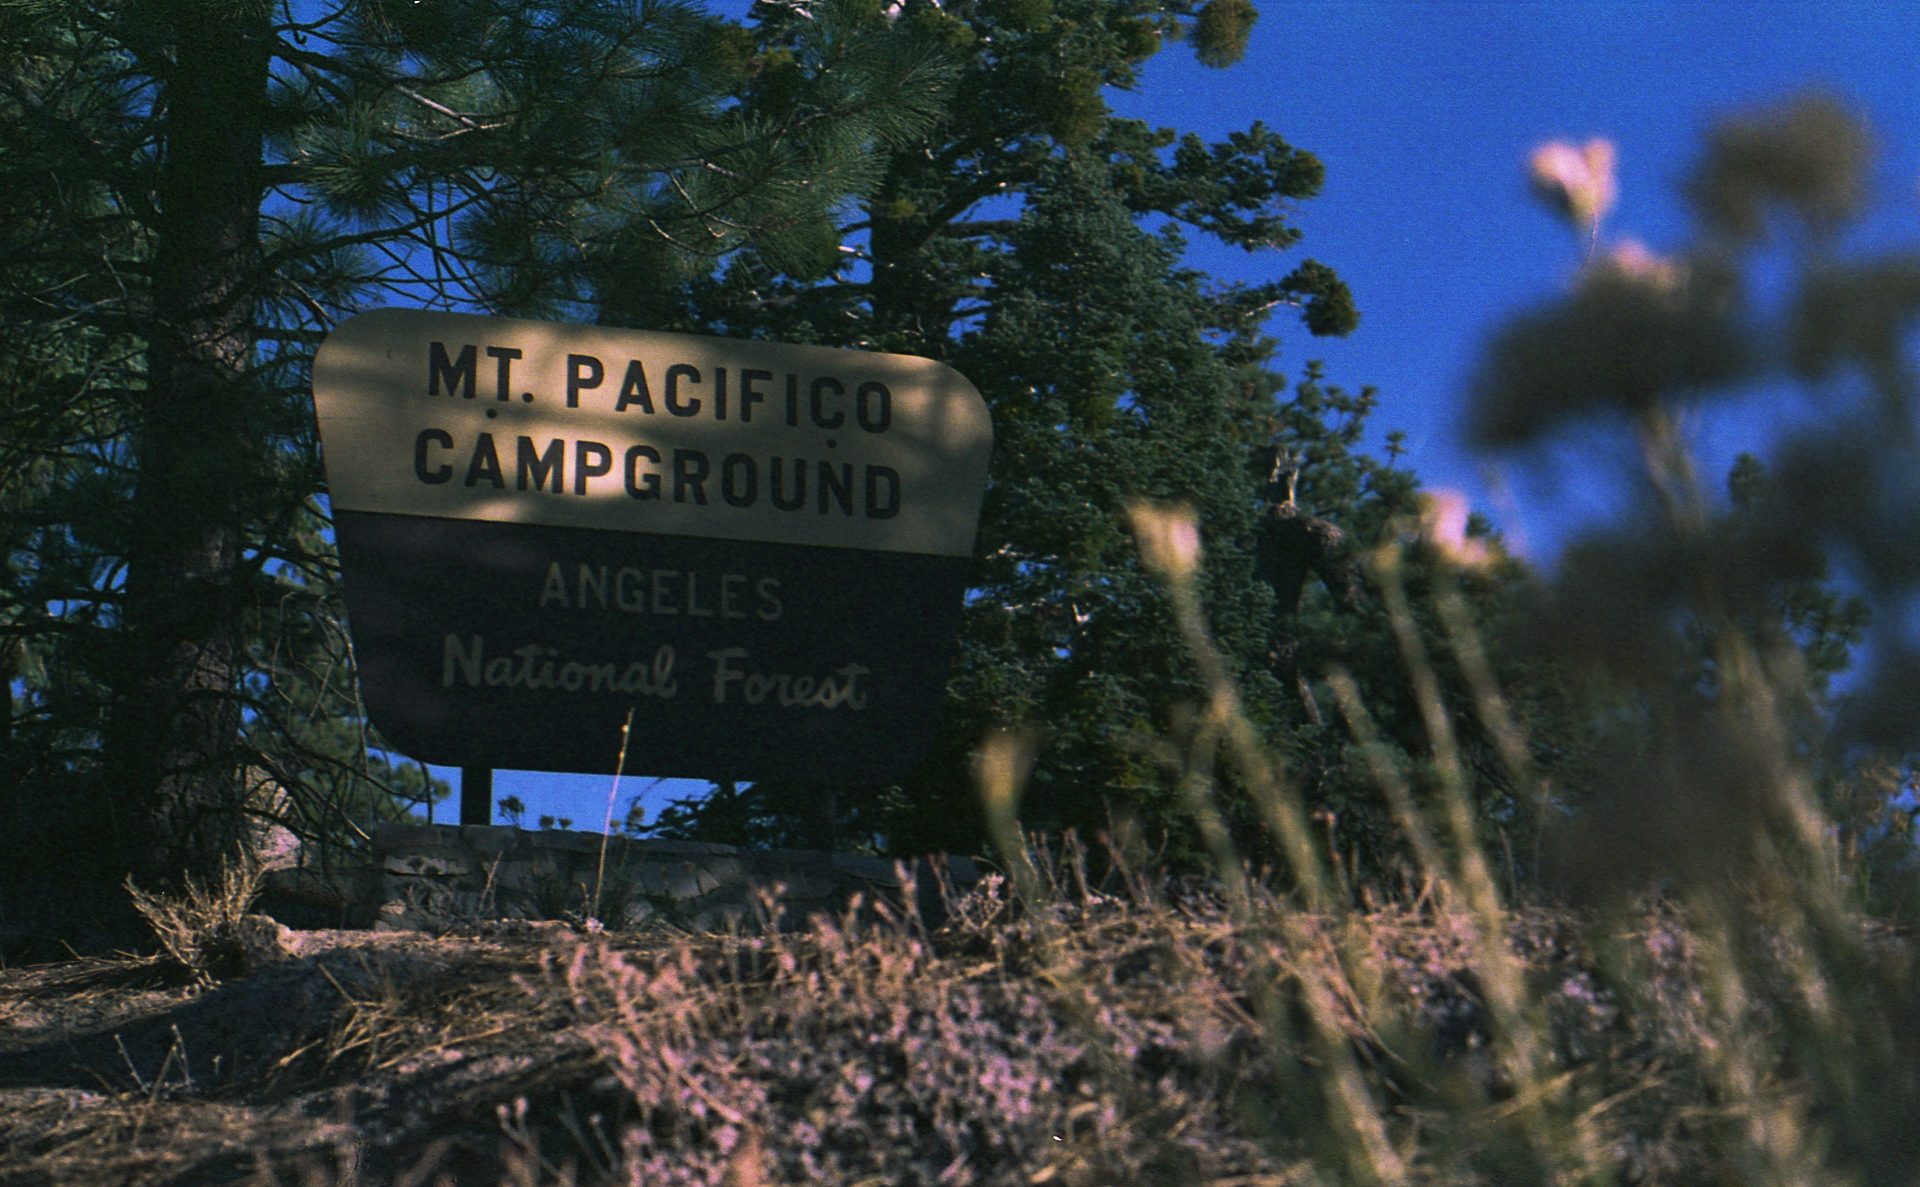 Mt Pacifico Campground Sign